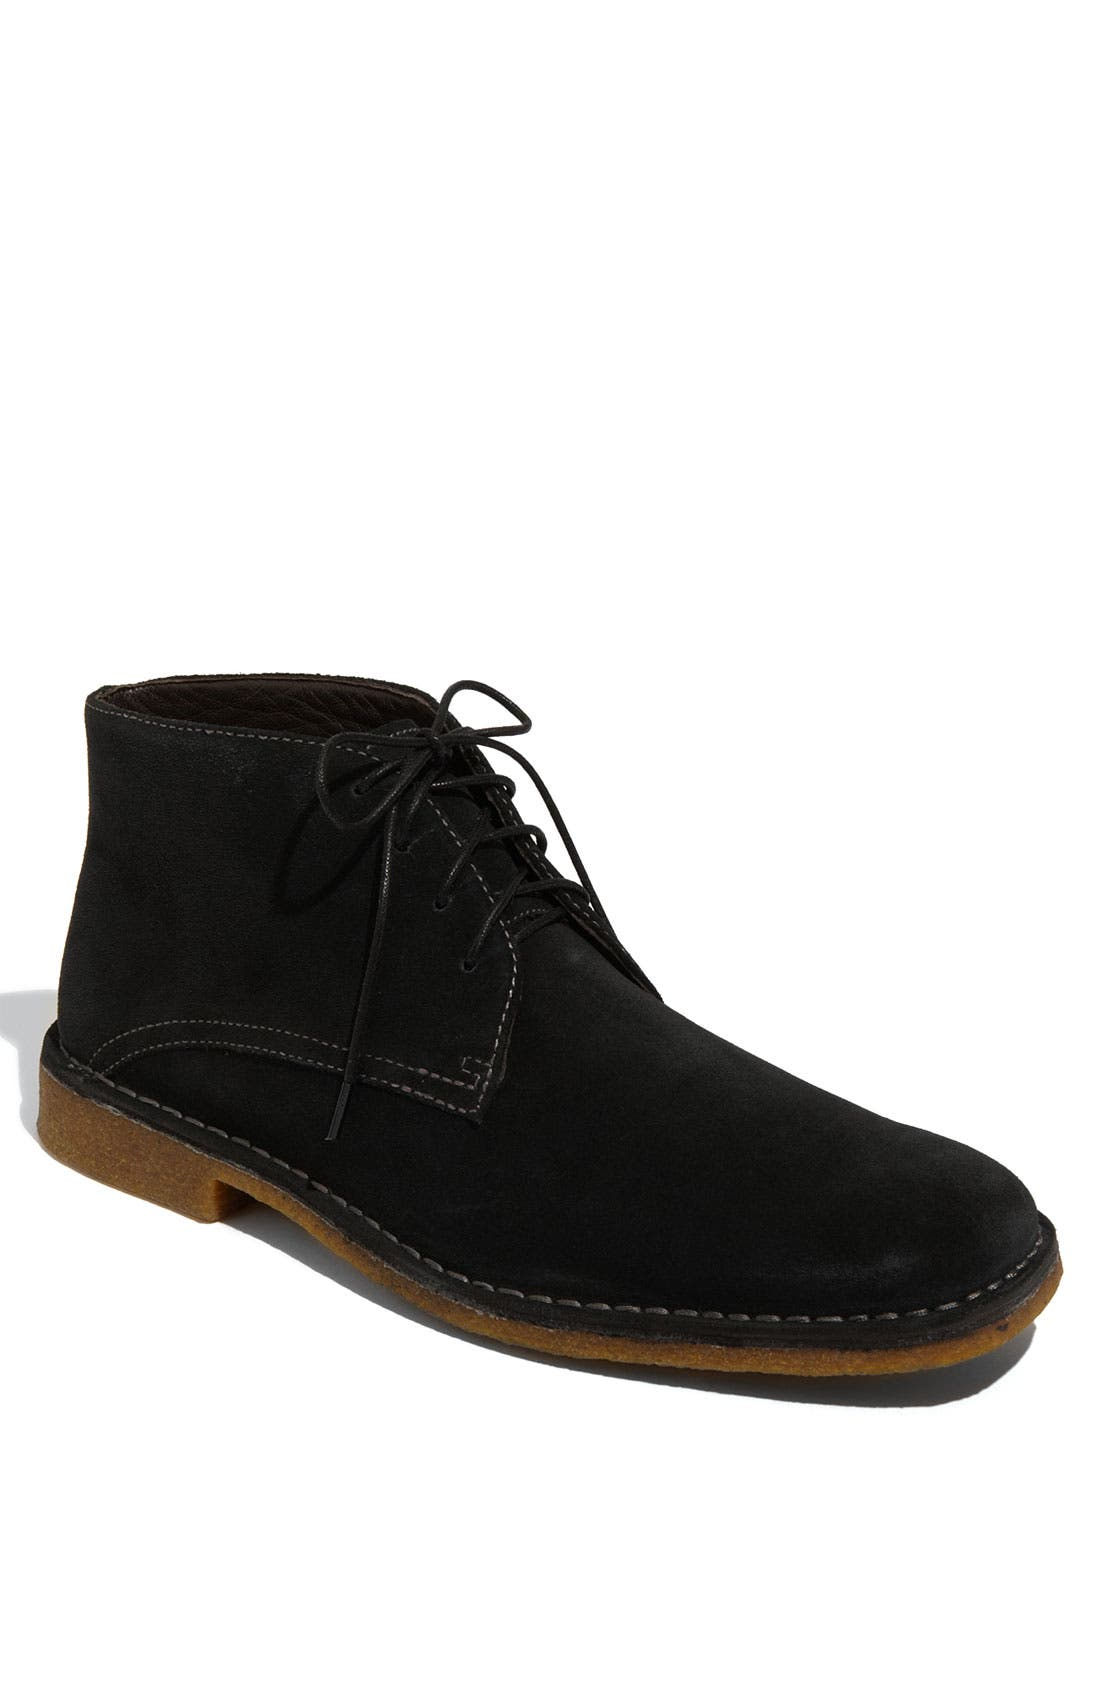 Alternate Image 1 Selected - Johnston & Murphy 'Runnell' Chukka Boot (Online Only)